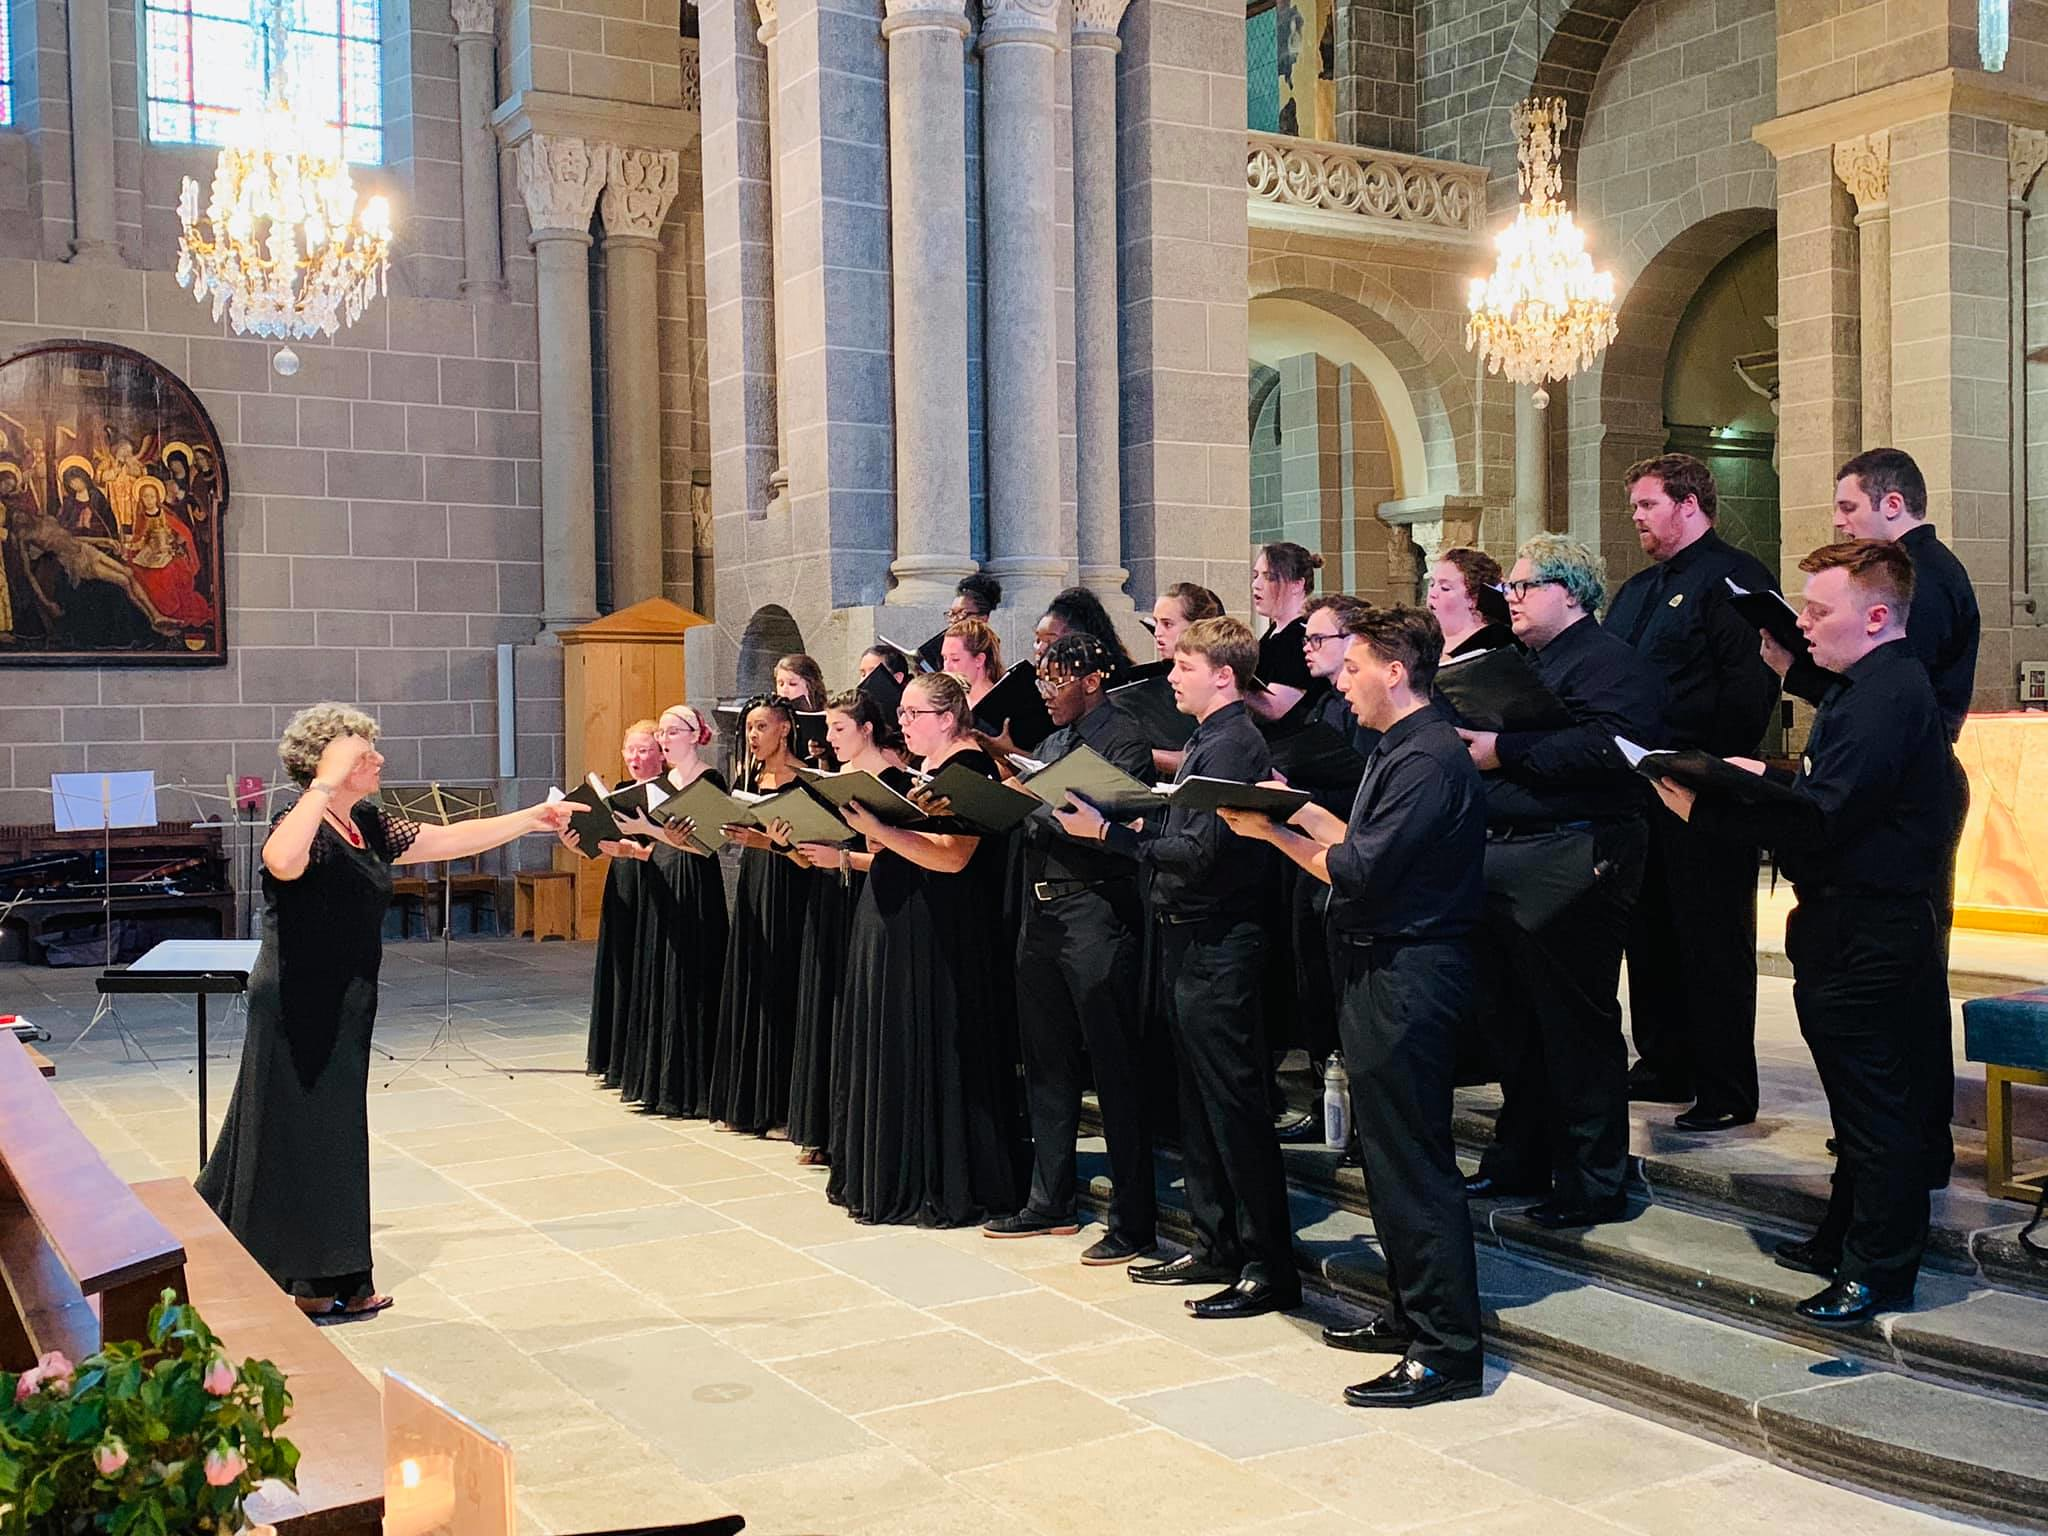 Choir performs in a church space.